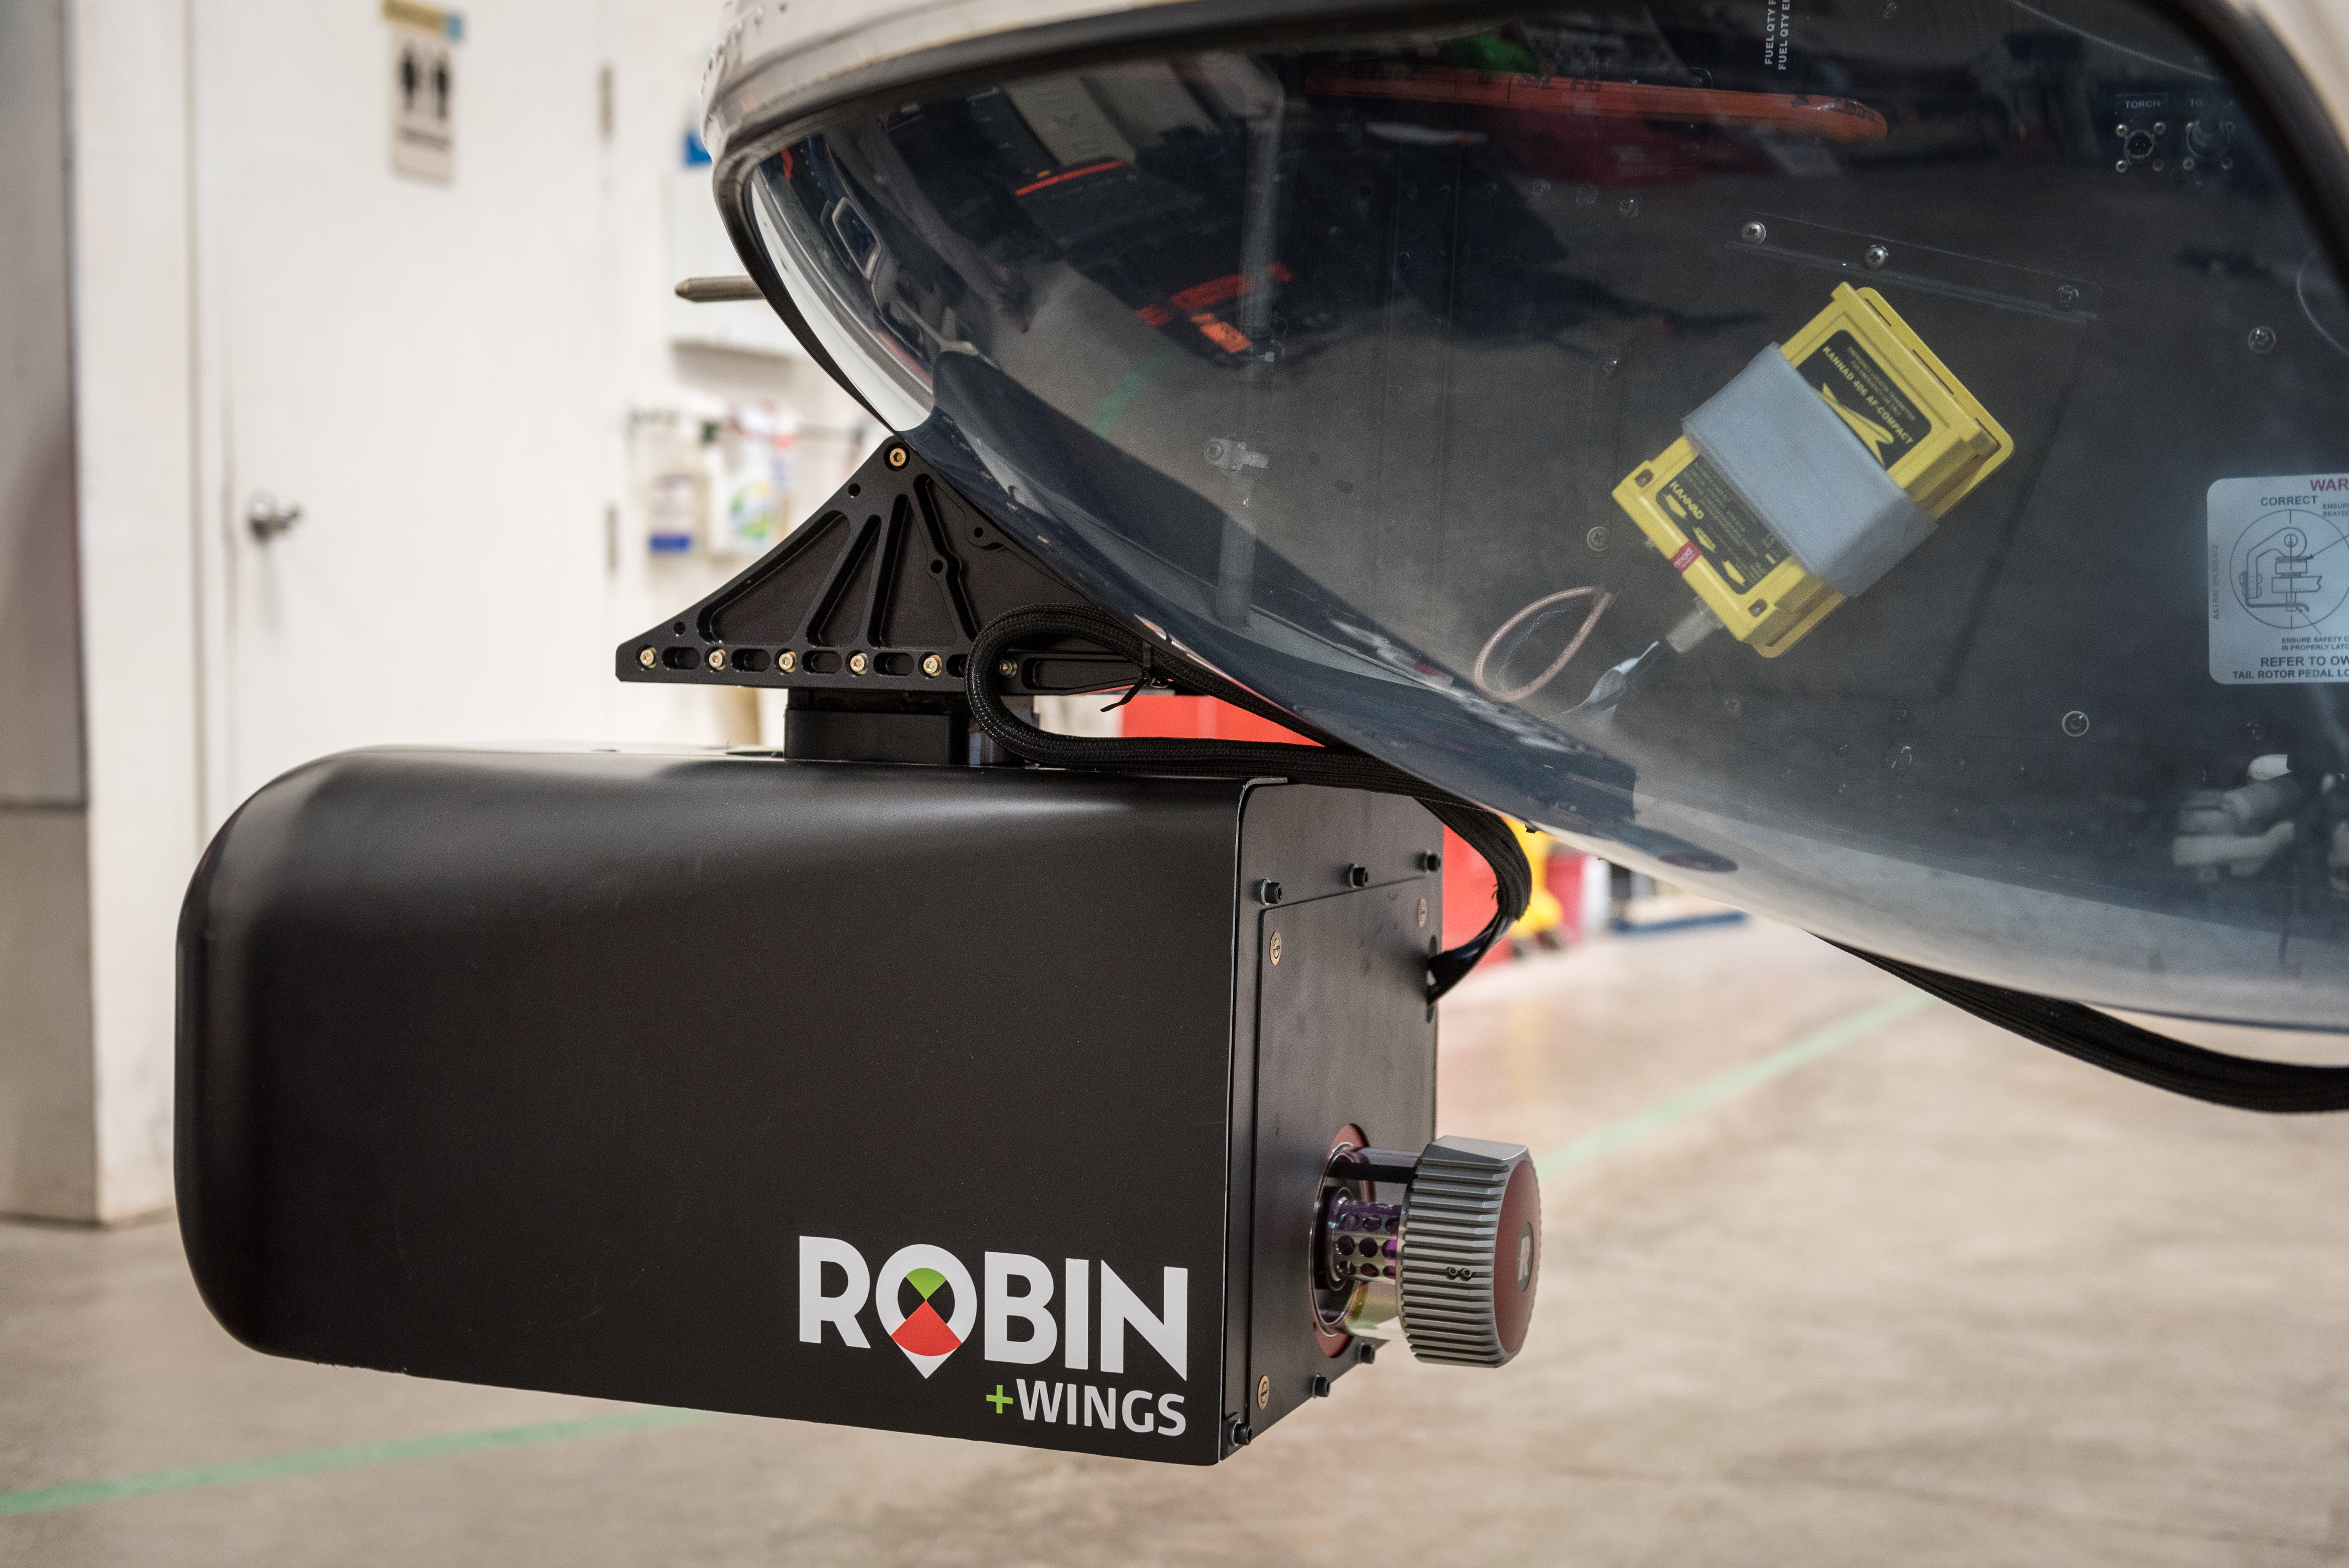 ROBIN +WINGS airborne lidar helicopter